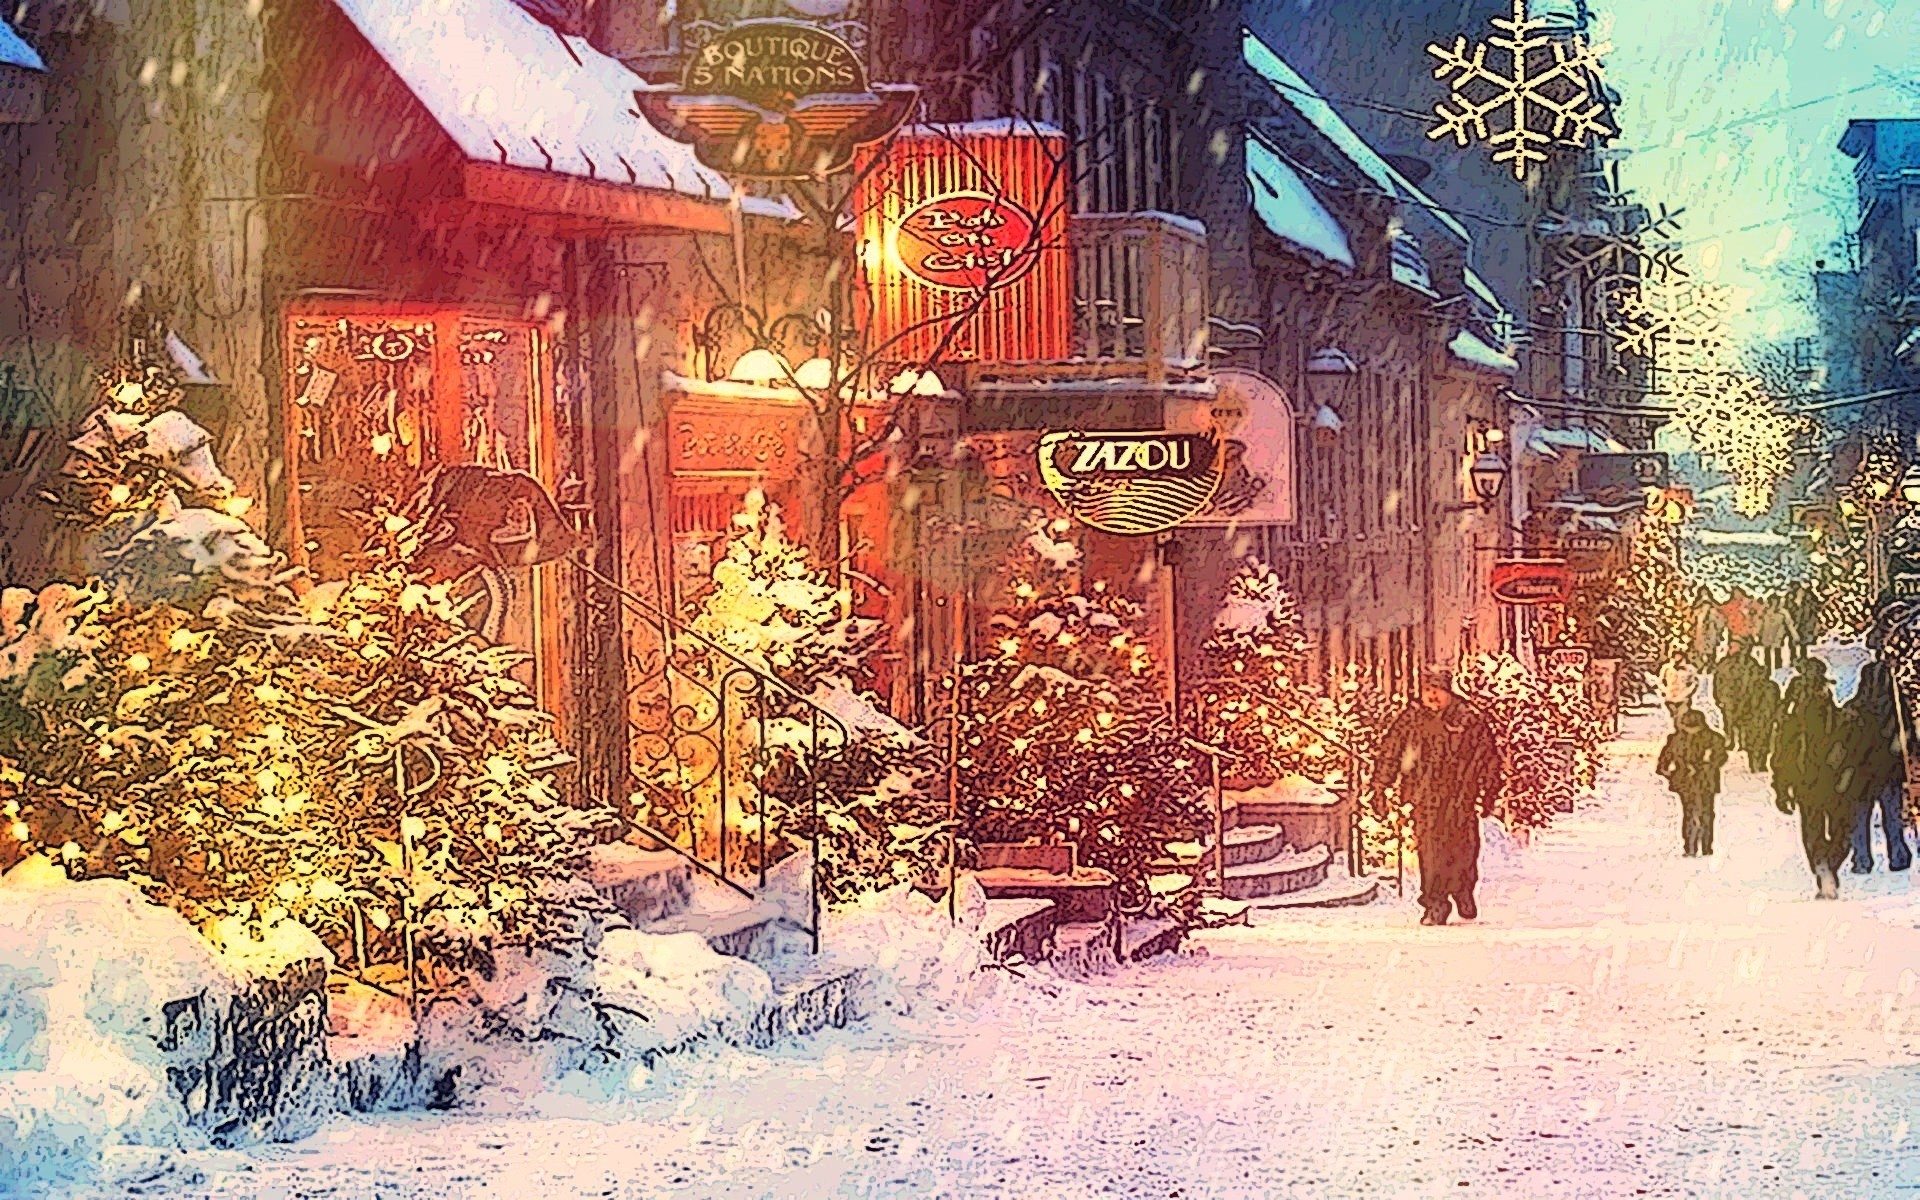 Snow in the city wallpaper images